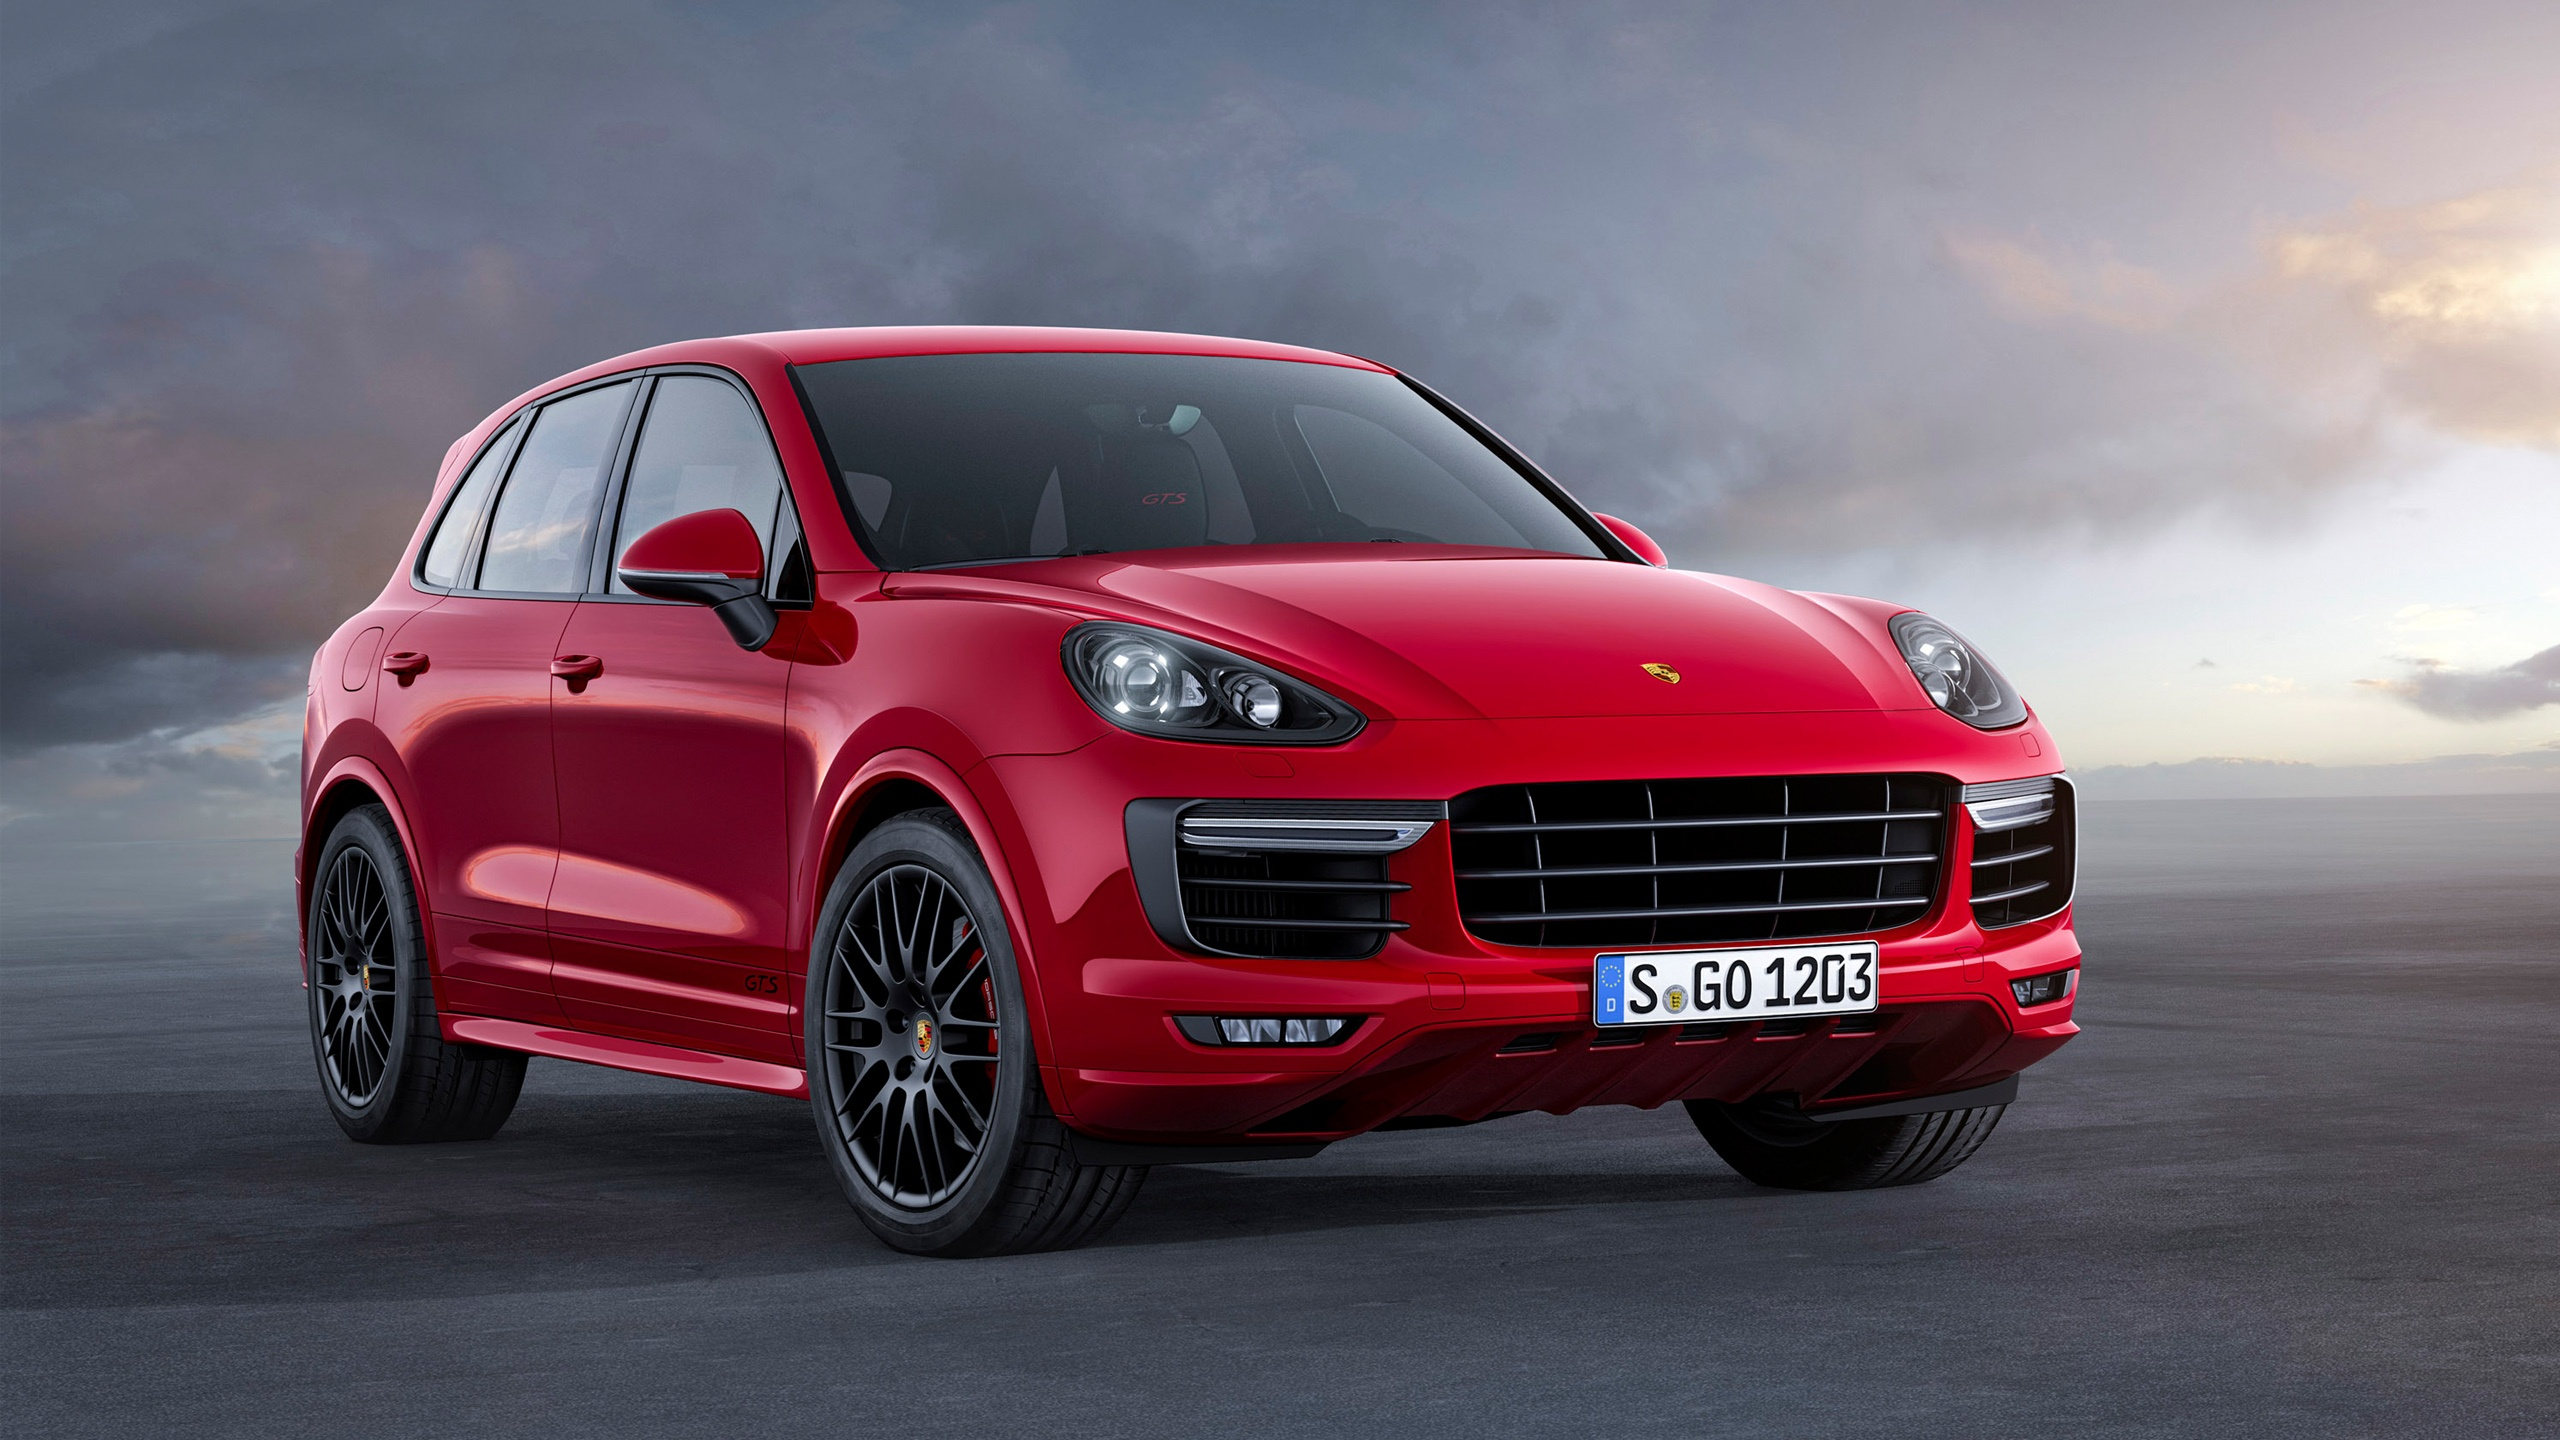 2015 Porsche Cayenne GTS Wallpaper HD Car Wallpapers 2560x1440